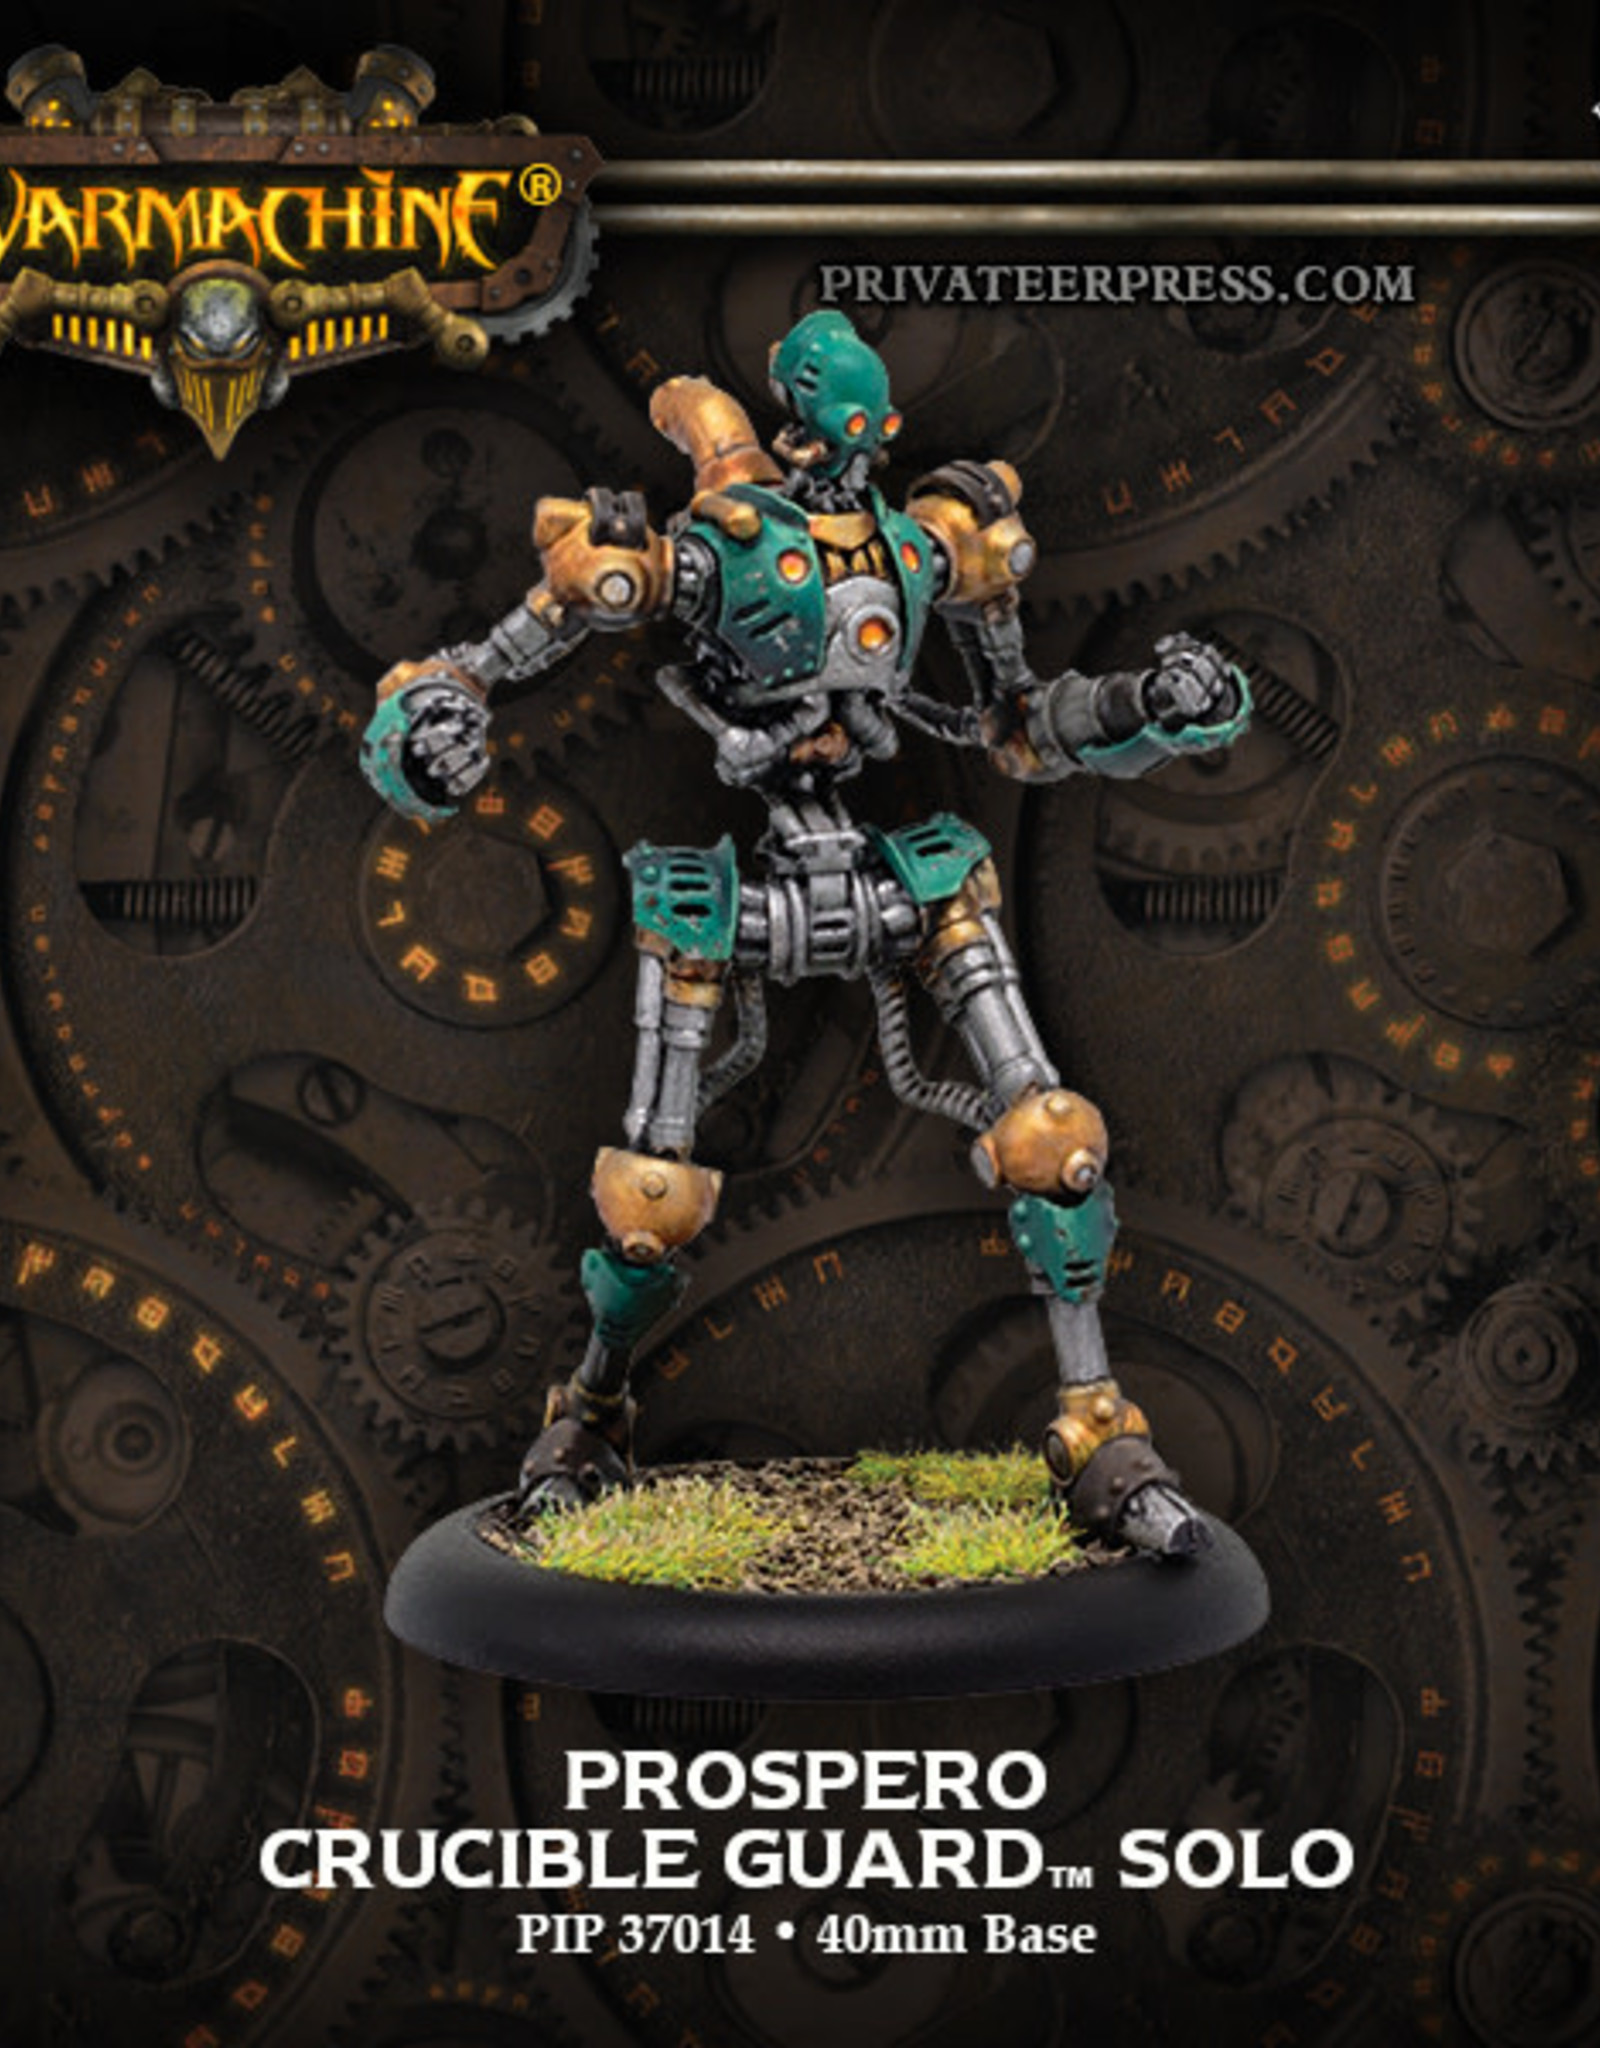 Warmachine Crucible Guard - Prospero